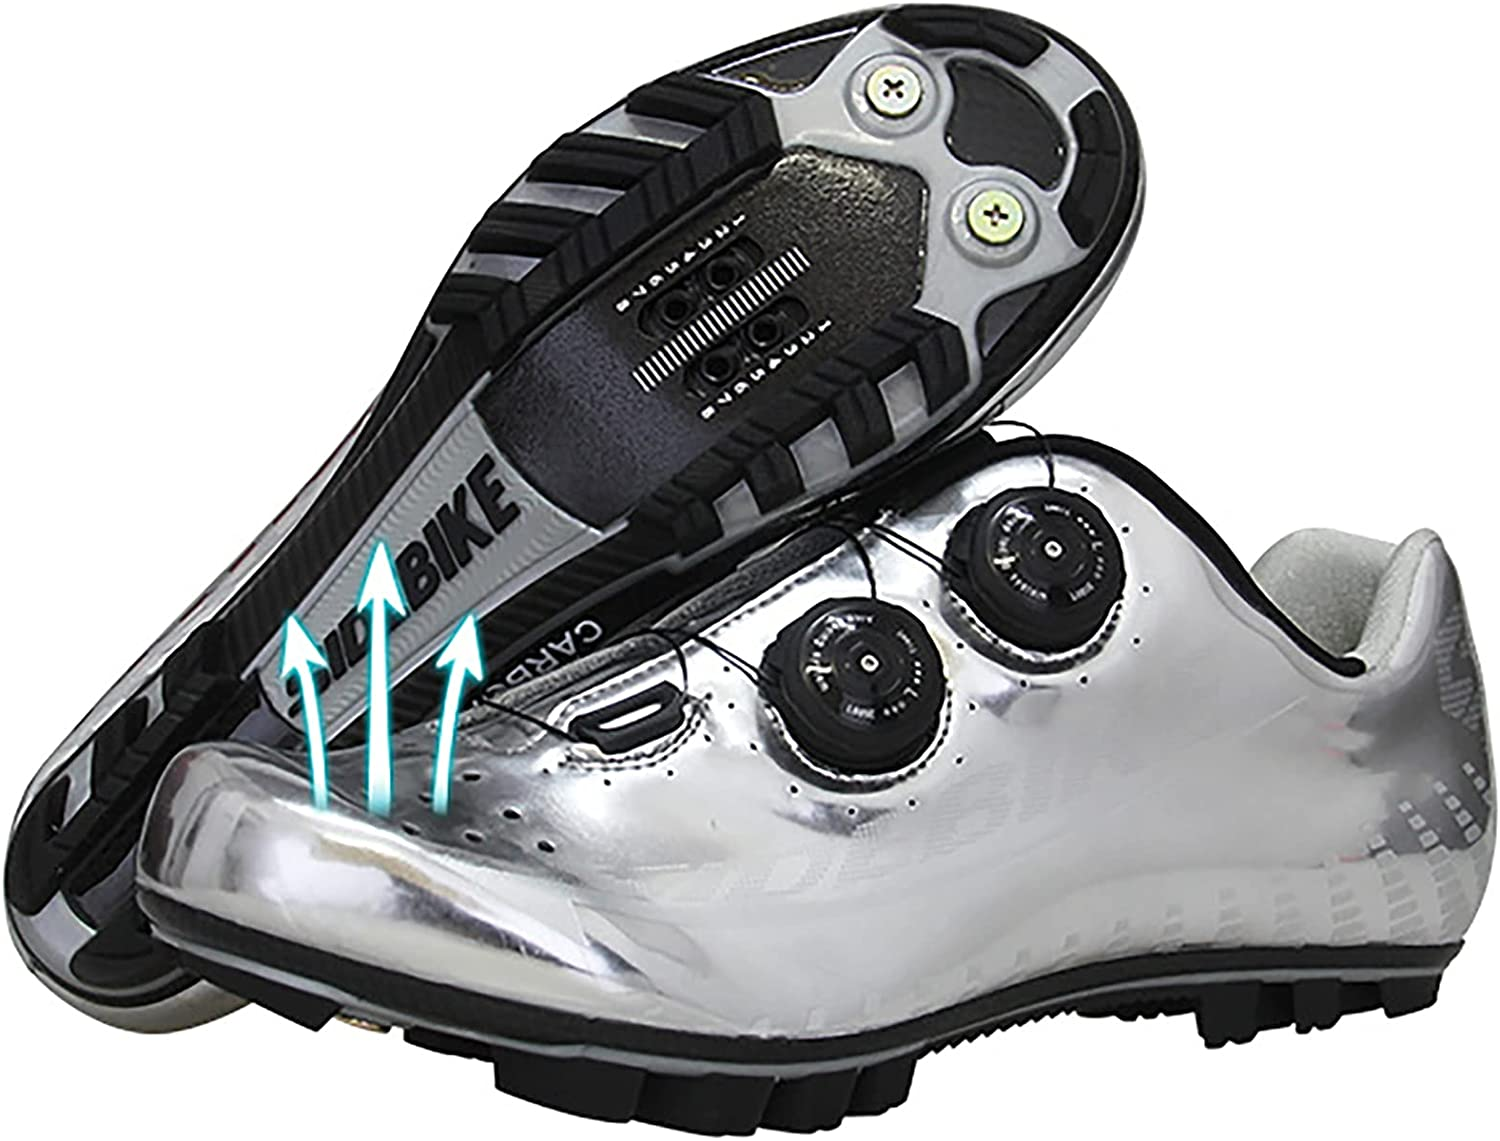 70% OFF Outlet Unisex Adults Advanced Max 77% OFF Road Biking Shoes Carbon Fiber Much Not